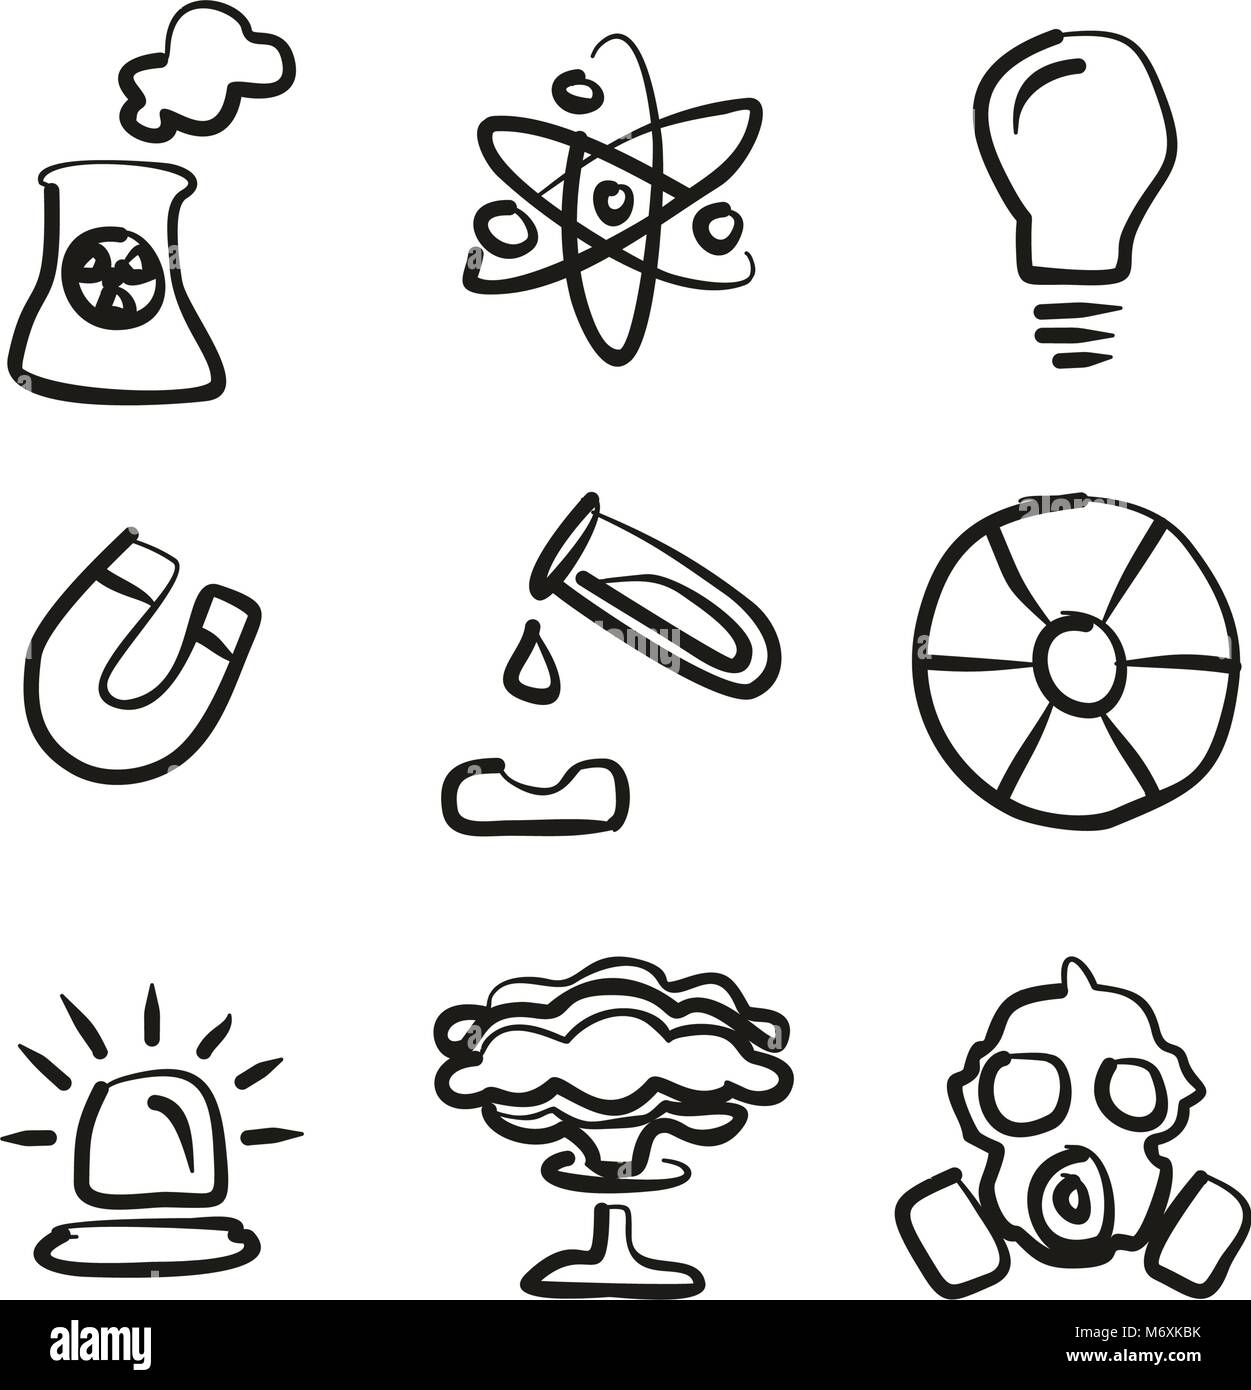 Nuclear Power Plant Icons Freehand - Stock Vector